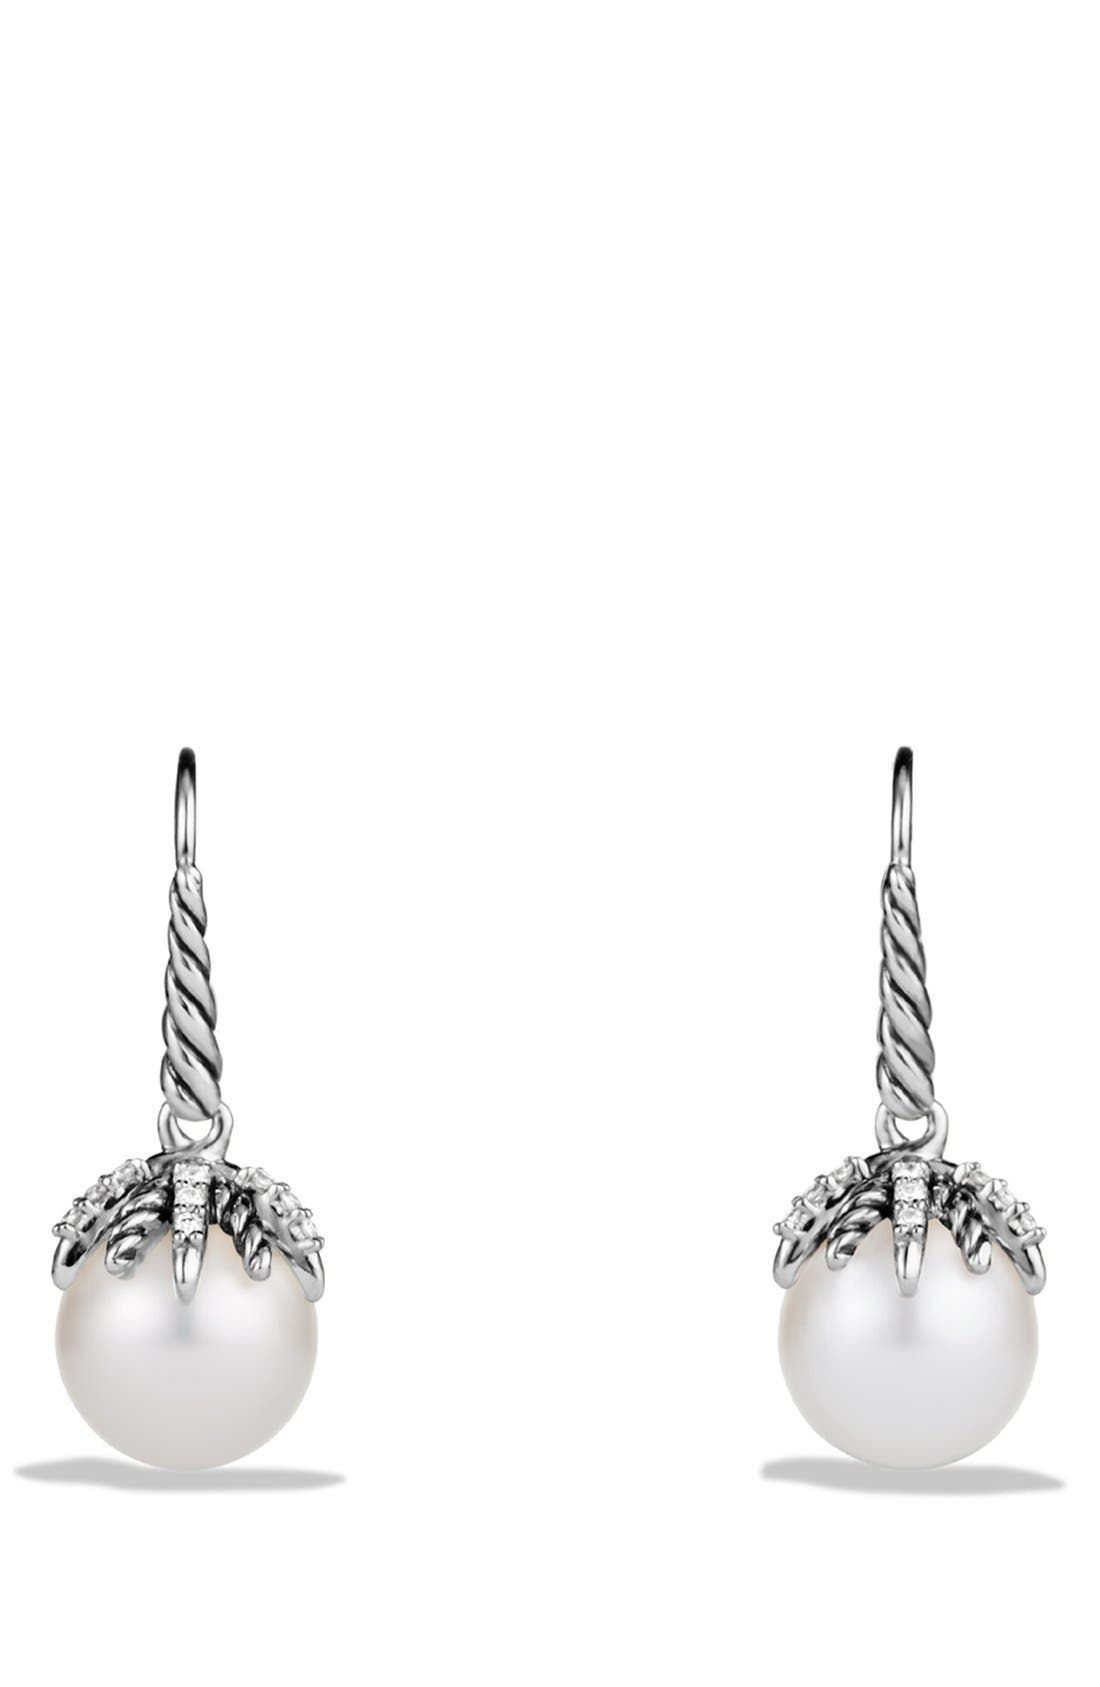 David Yurman 'Starburst' Earrings with Pearls and Diamonds